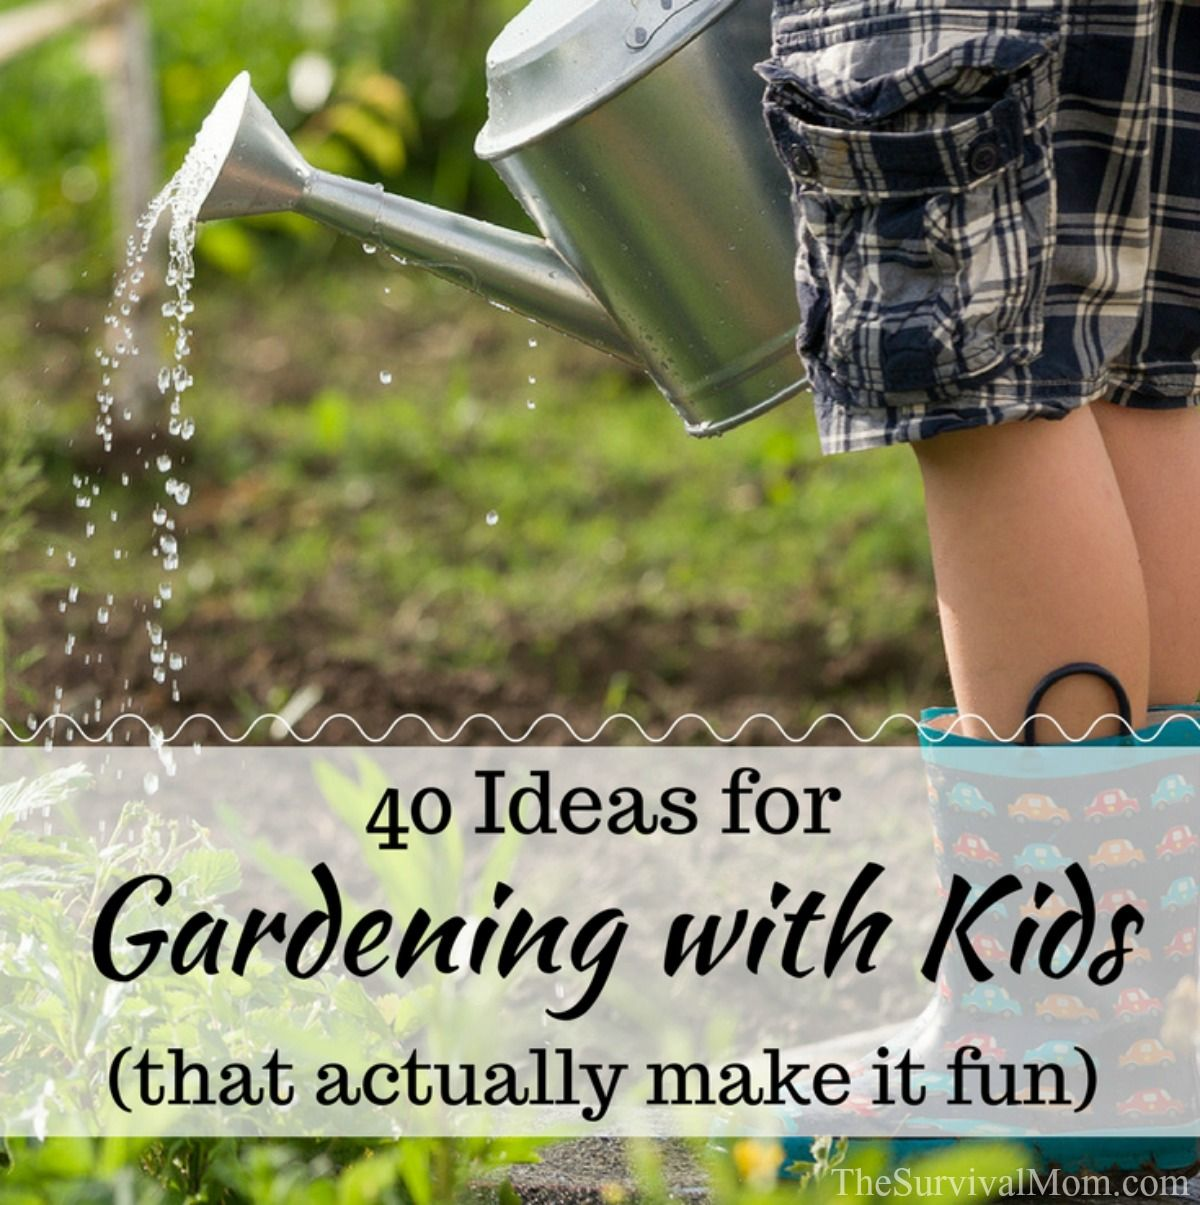 40 Ideas for Gardening with Kids that actually make it fun via The Survival Mom